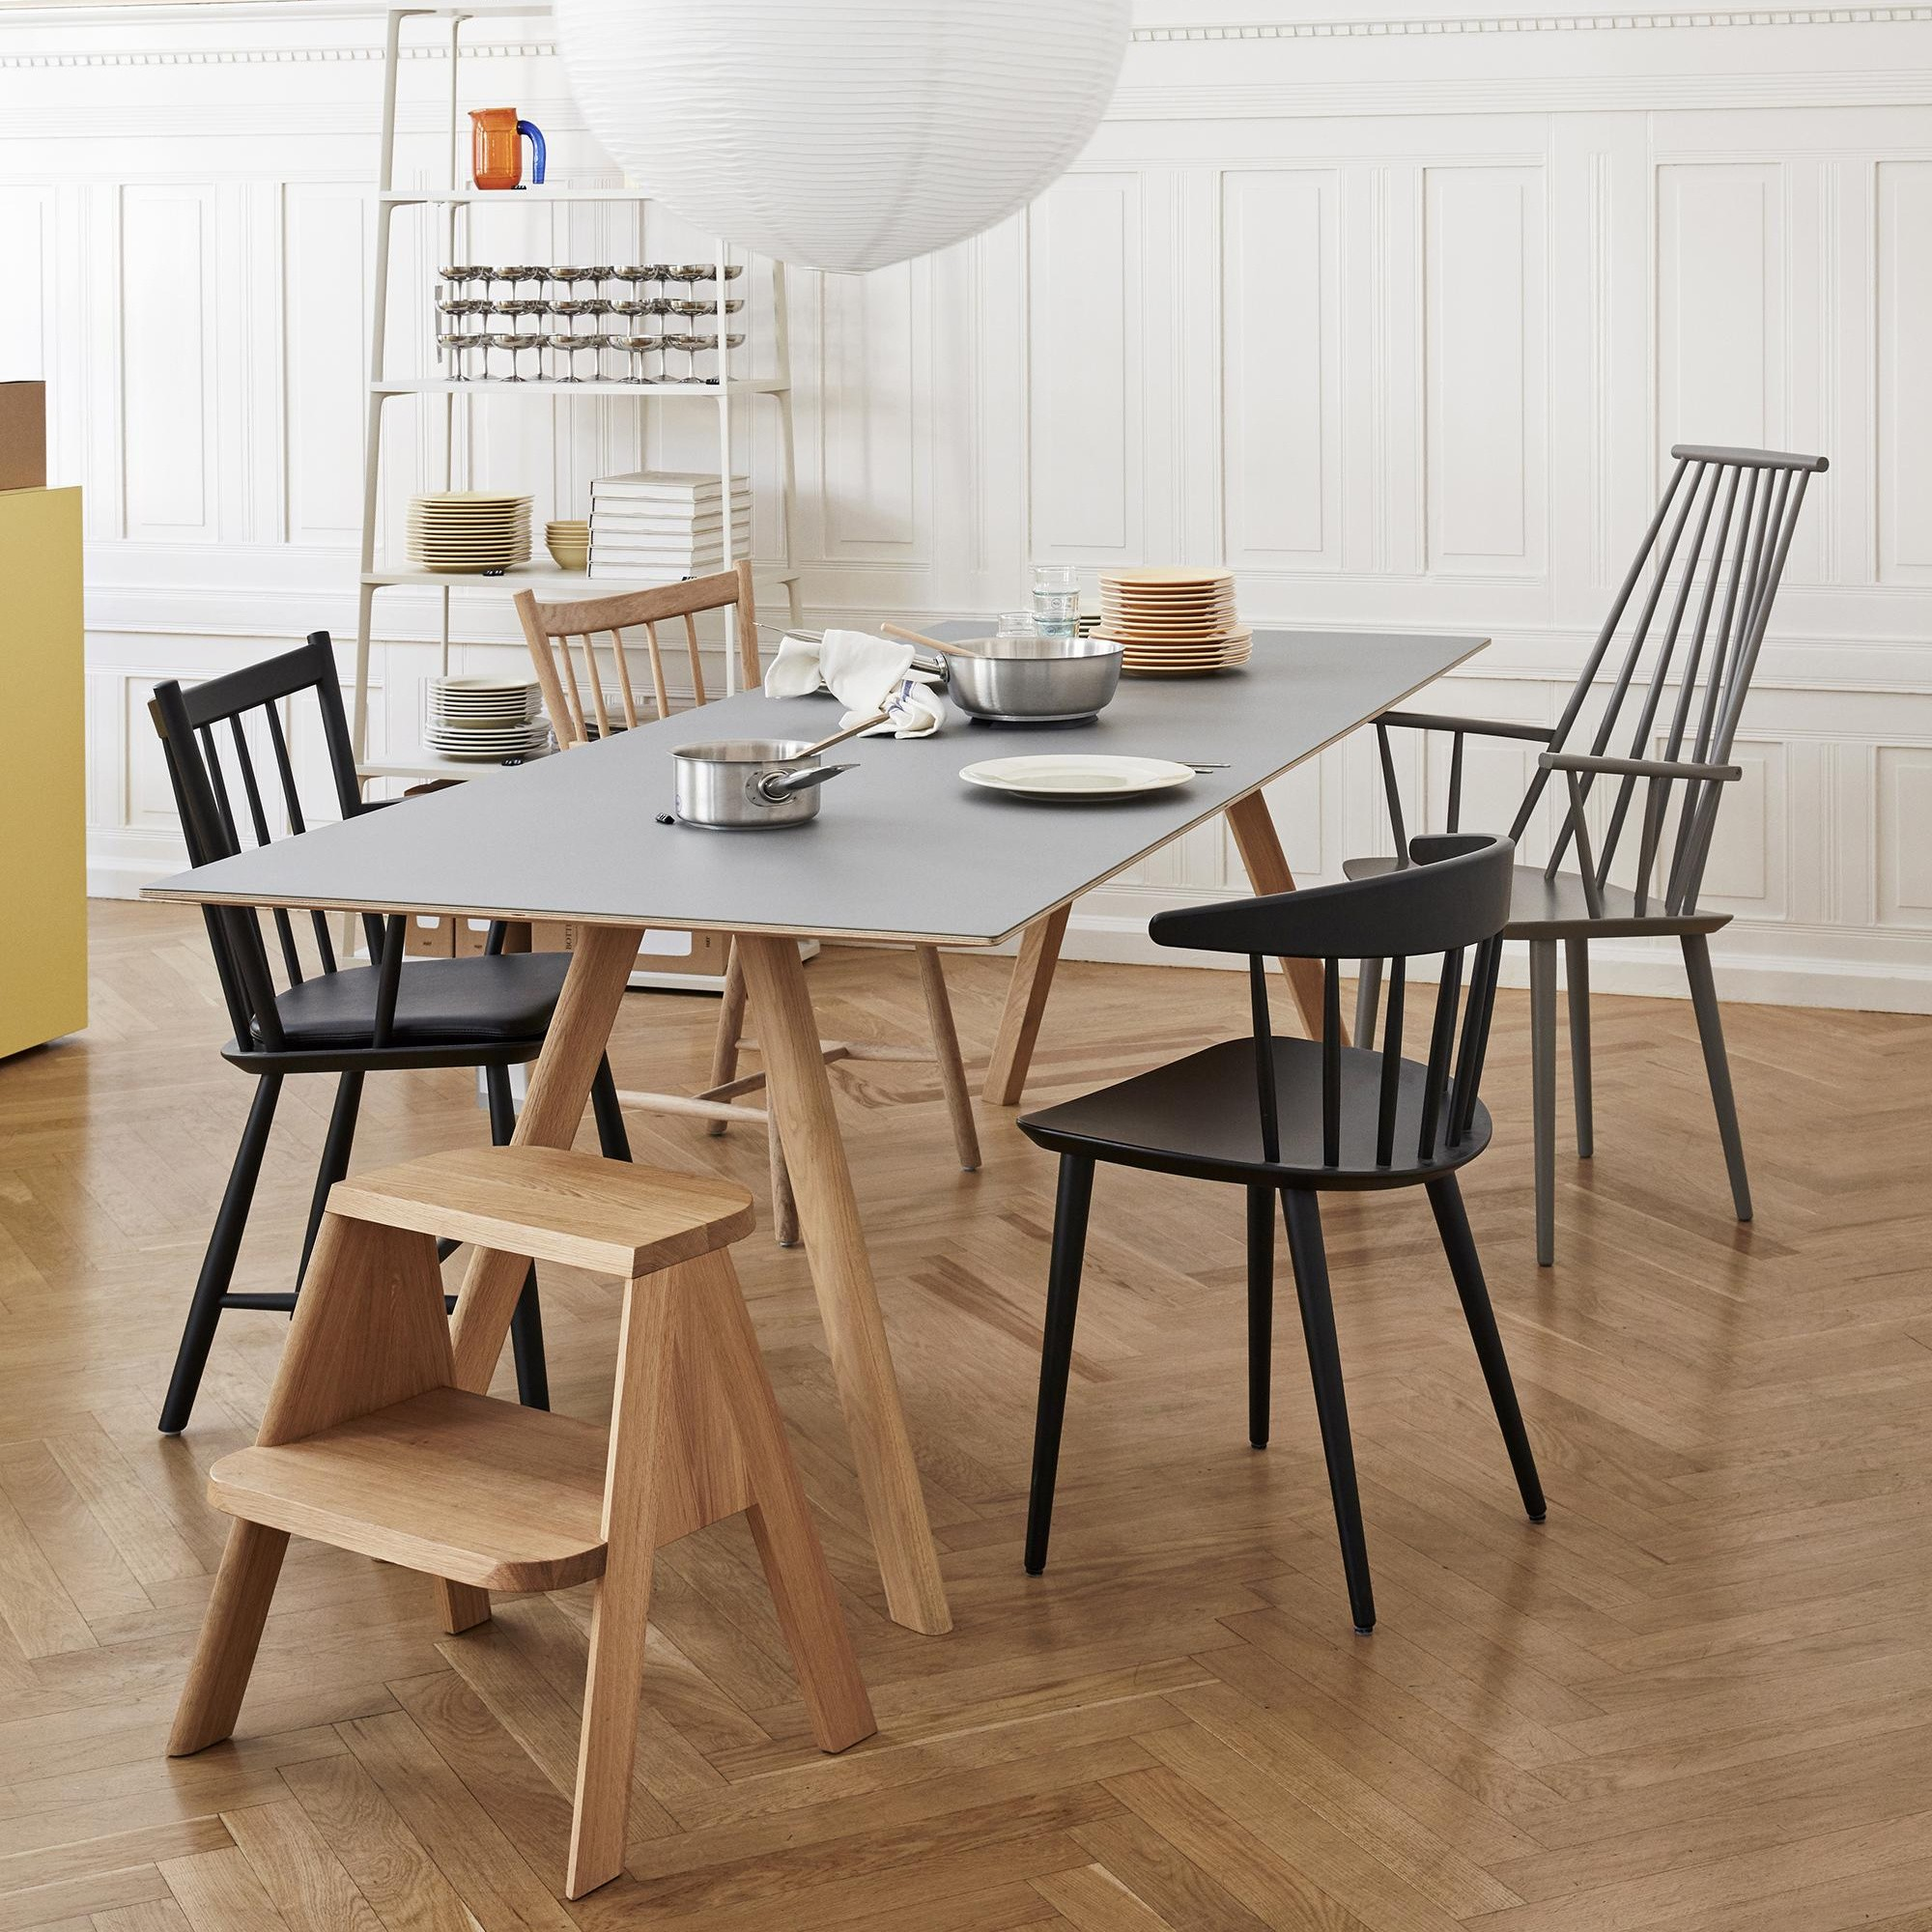 Hay Copenhague Table CPH30 Tisch